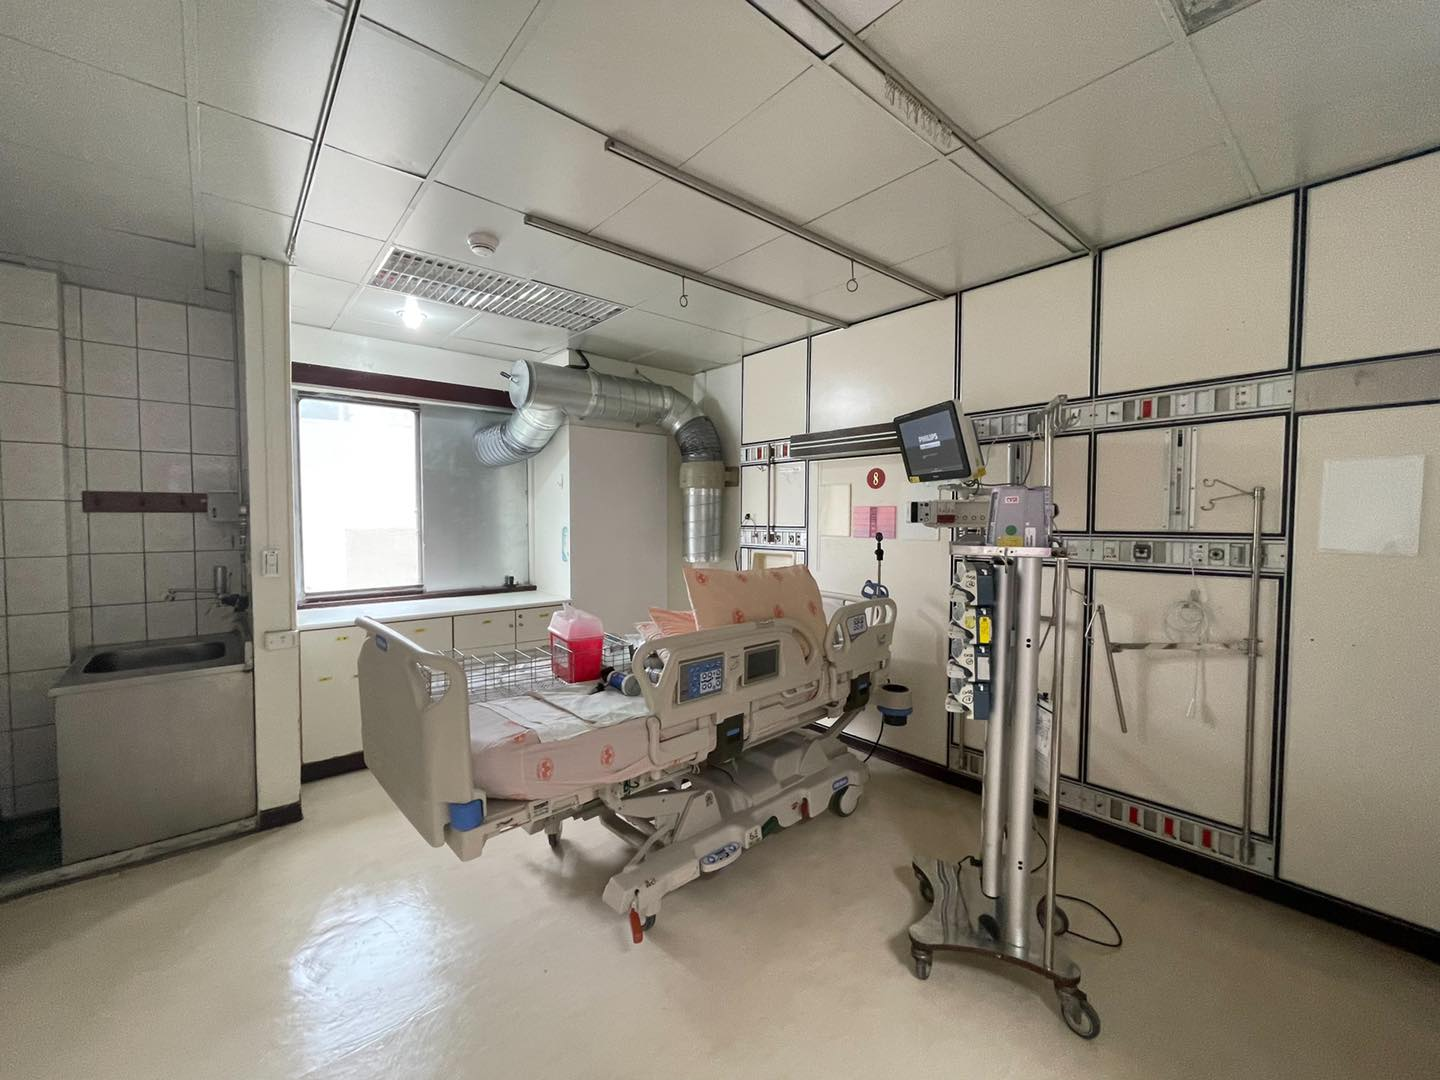 Ke Wenzhe said that today the number of COVID-19 hospital beds in Taipei has been expanded to 960 beds, plus negative pressure isolation wards and general isolation wards, it is expected that by next Monday, it can be increased to 1,333 beds to treat COVID-19 patients.Picture: Retrieved from Ke Wenzhe Facebook